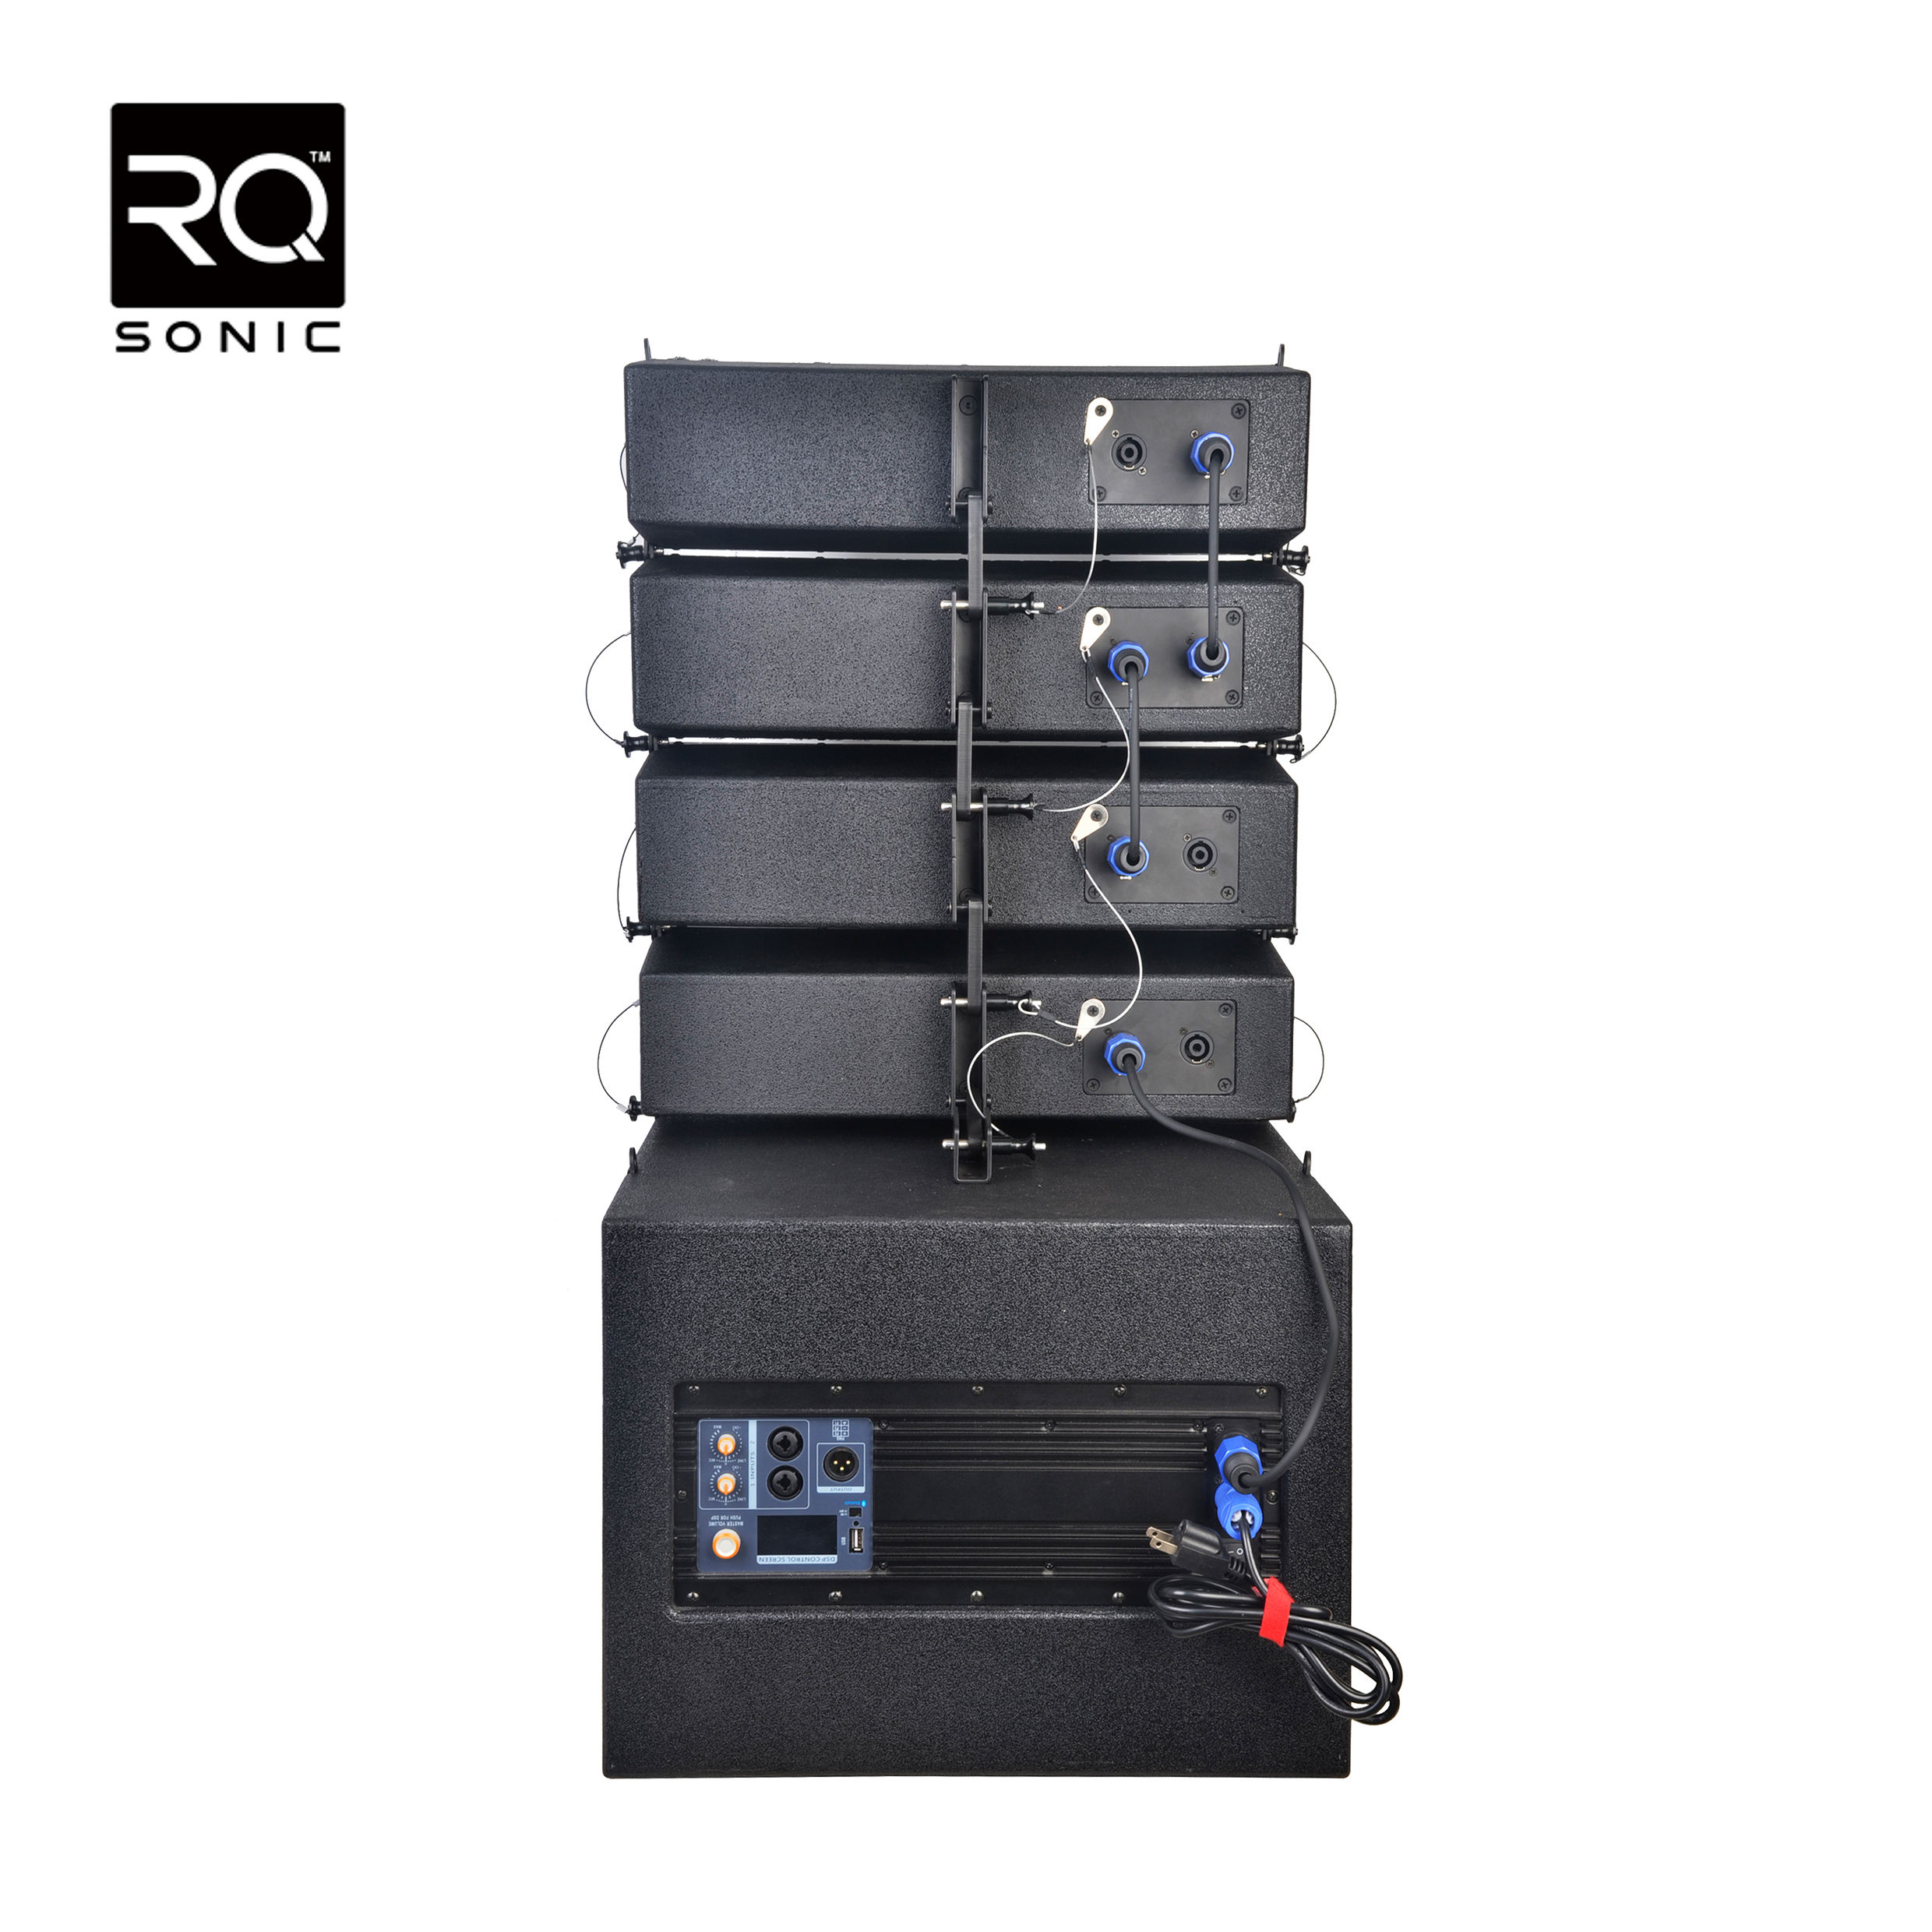 RQSONIC LA412D-KIT New China Pa 1000W Active Concert Stage Line Array Speaker Sound System